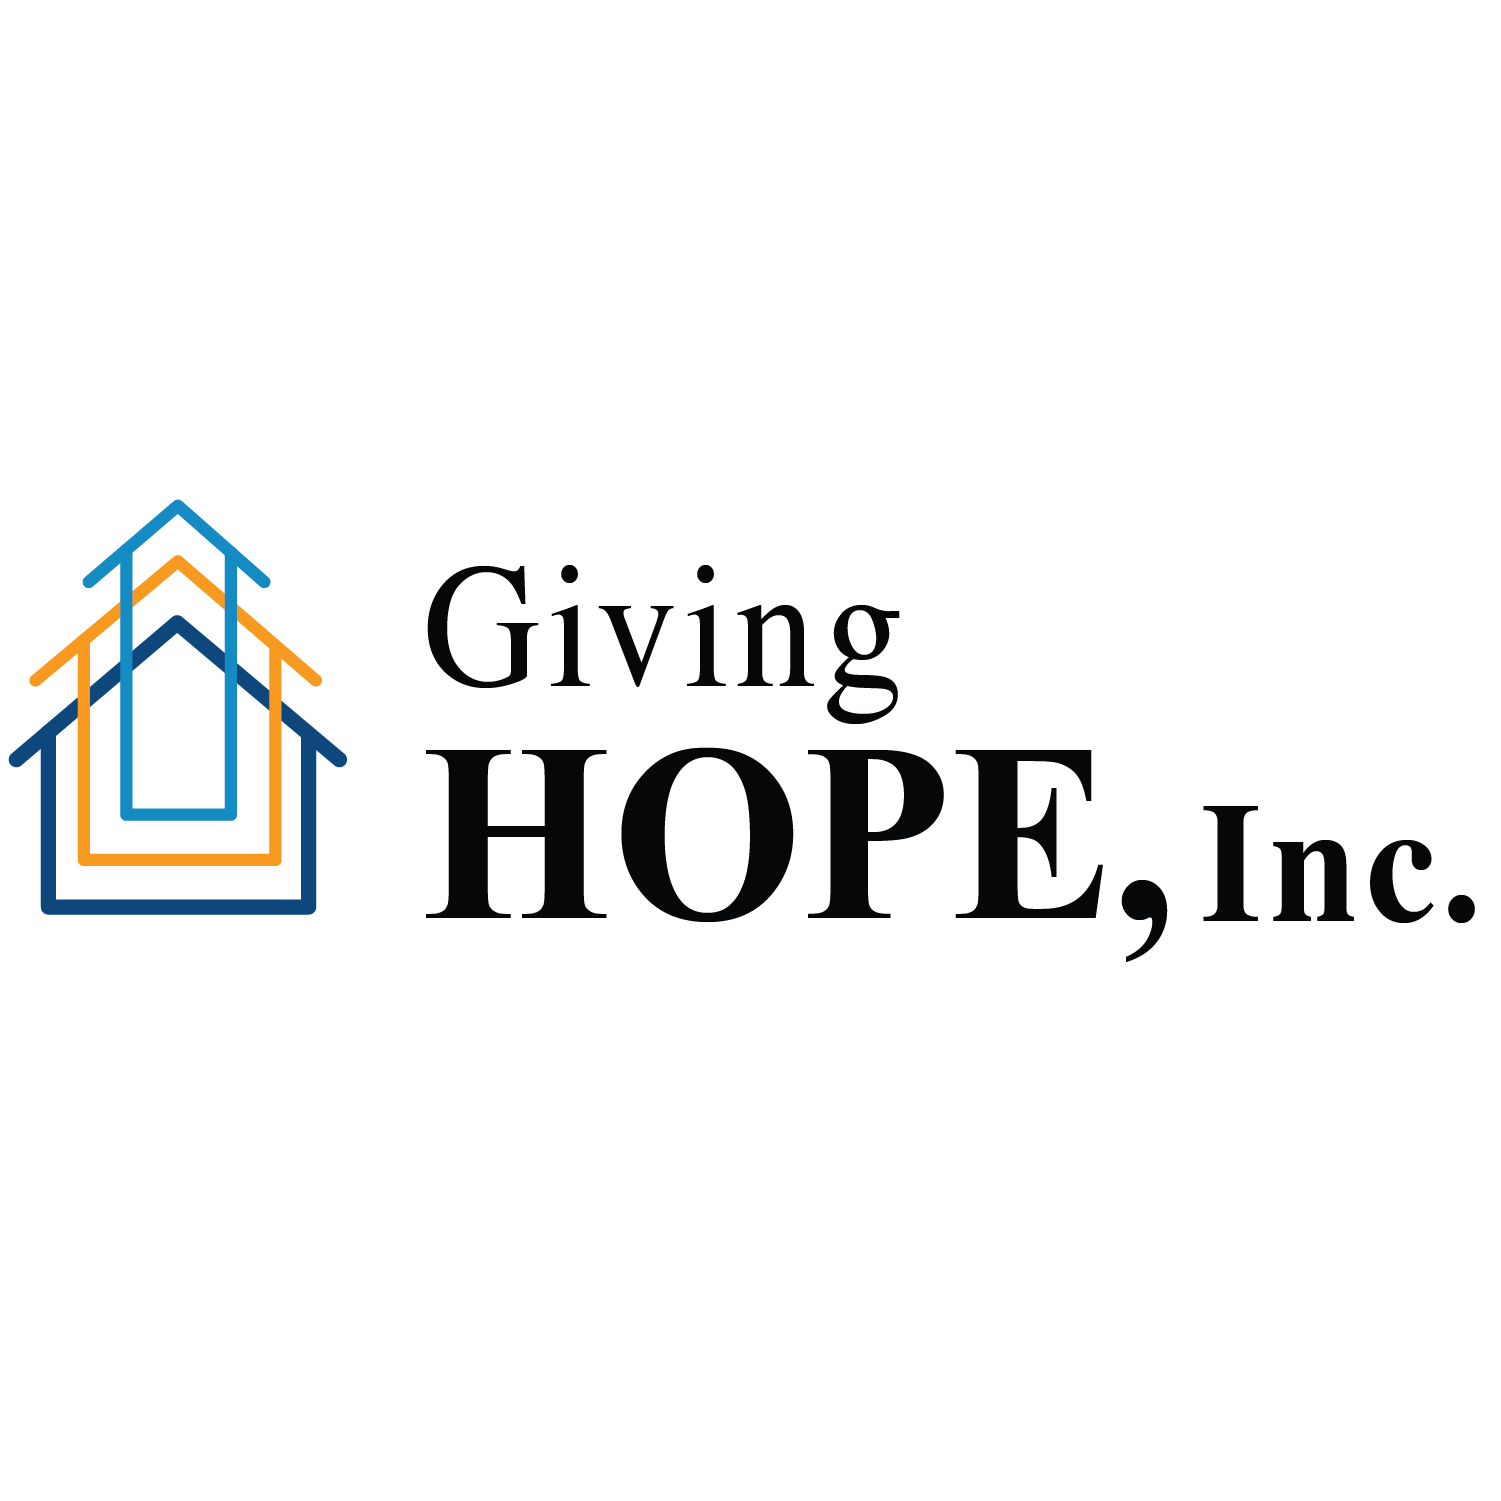 Giving Hope, Inc. gives a hand up to those experiencing or at-risk of homelessness through advocacy, community collaboration, and rental assistance in Denton County.   Housing